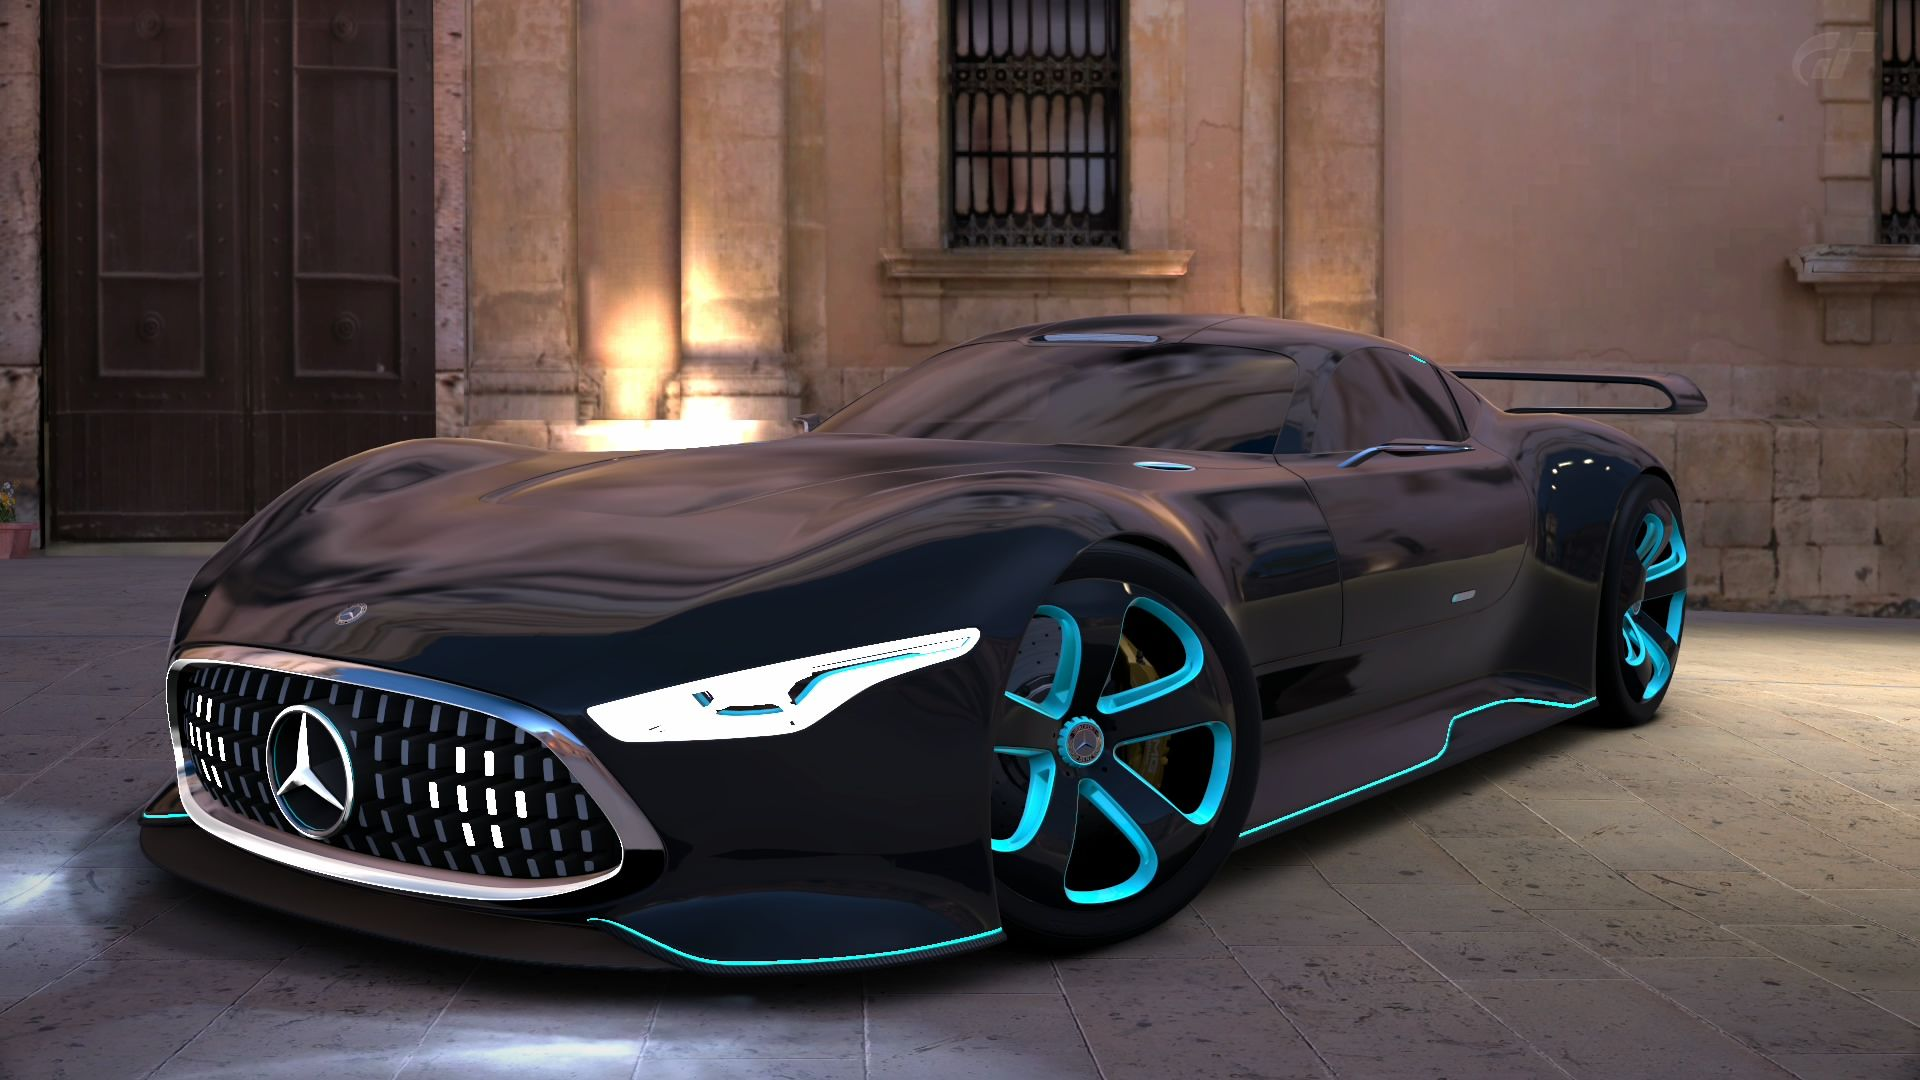 Gran turismo 6 mercedes benz amg vision gt by for Mercedes benz amg gt price